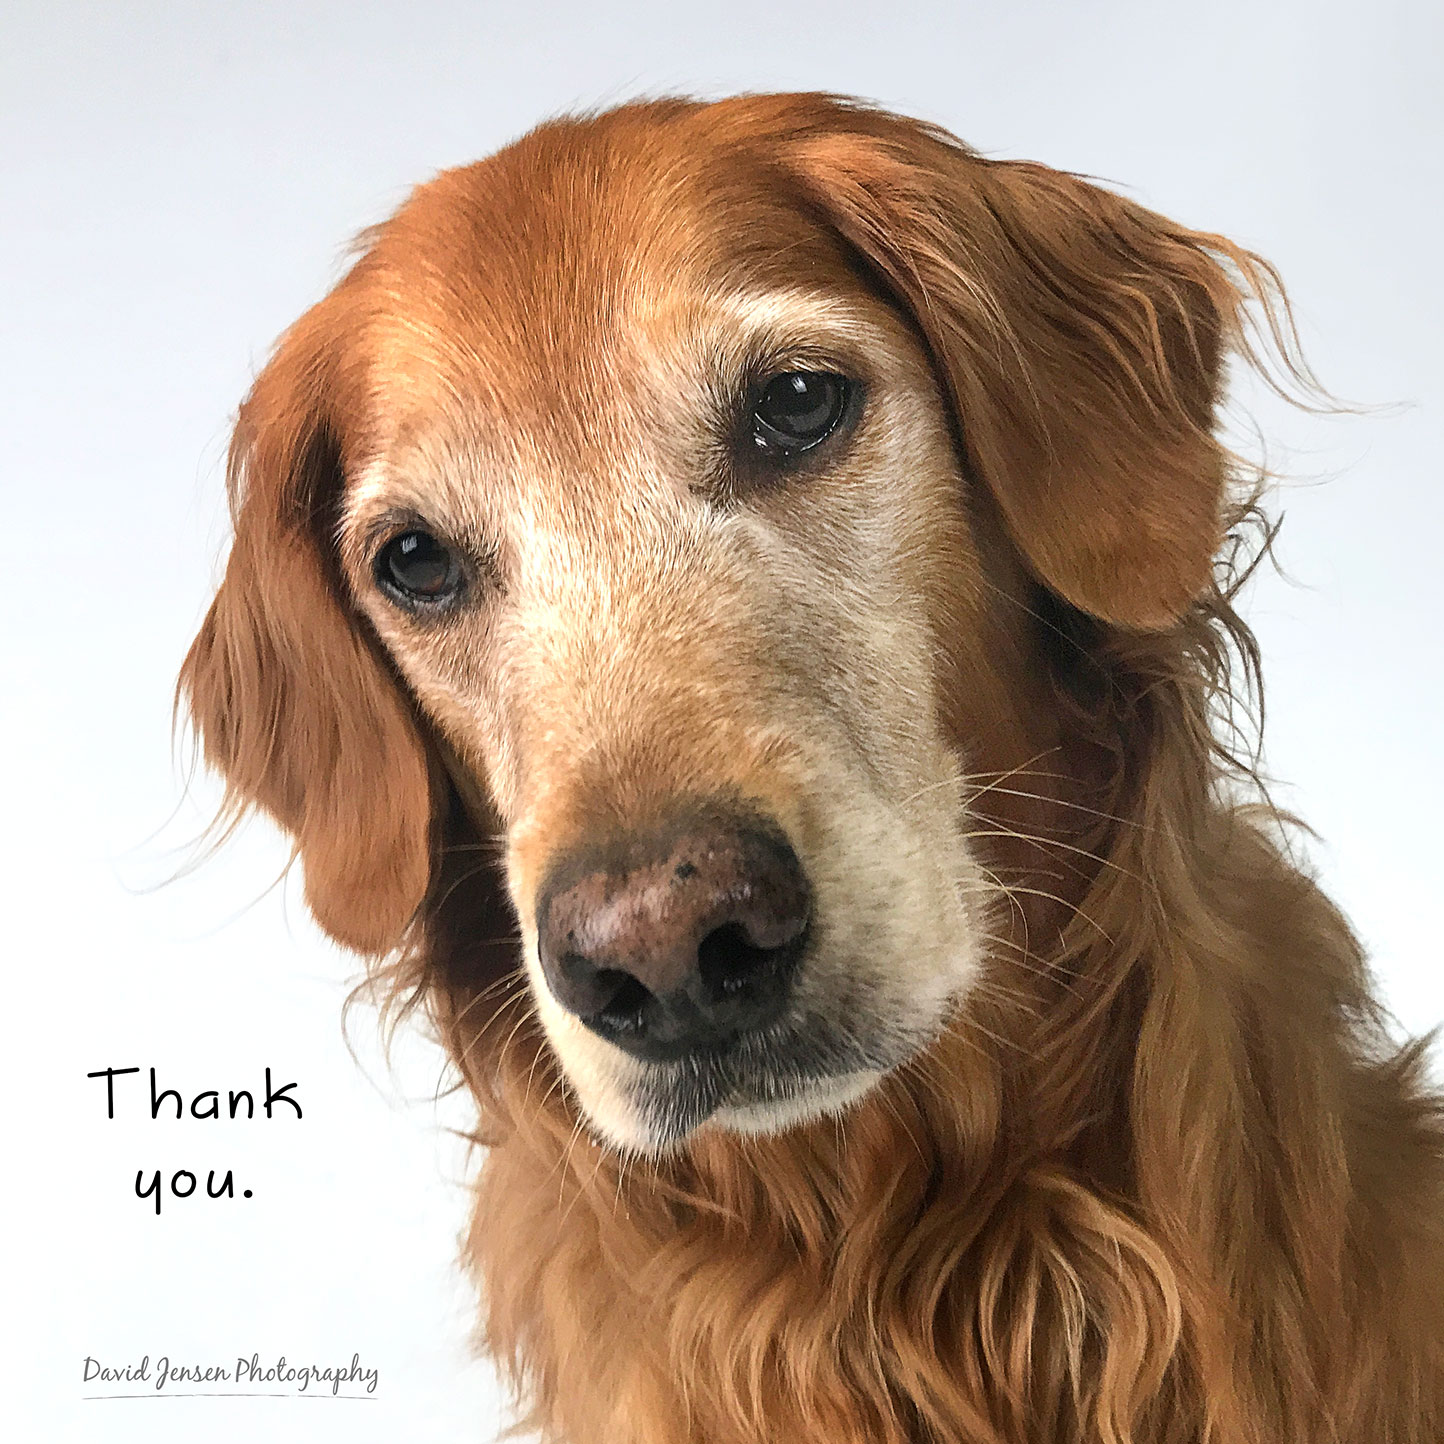 Thank you from the bottom of our hearts and paws.